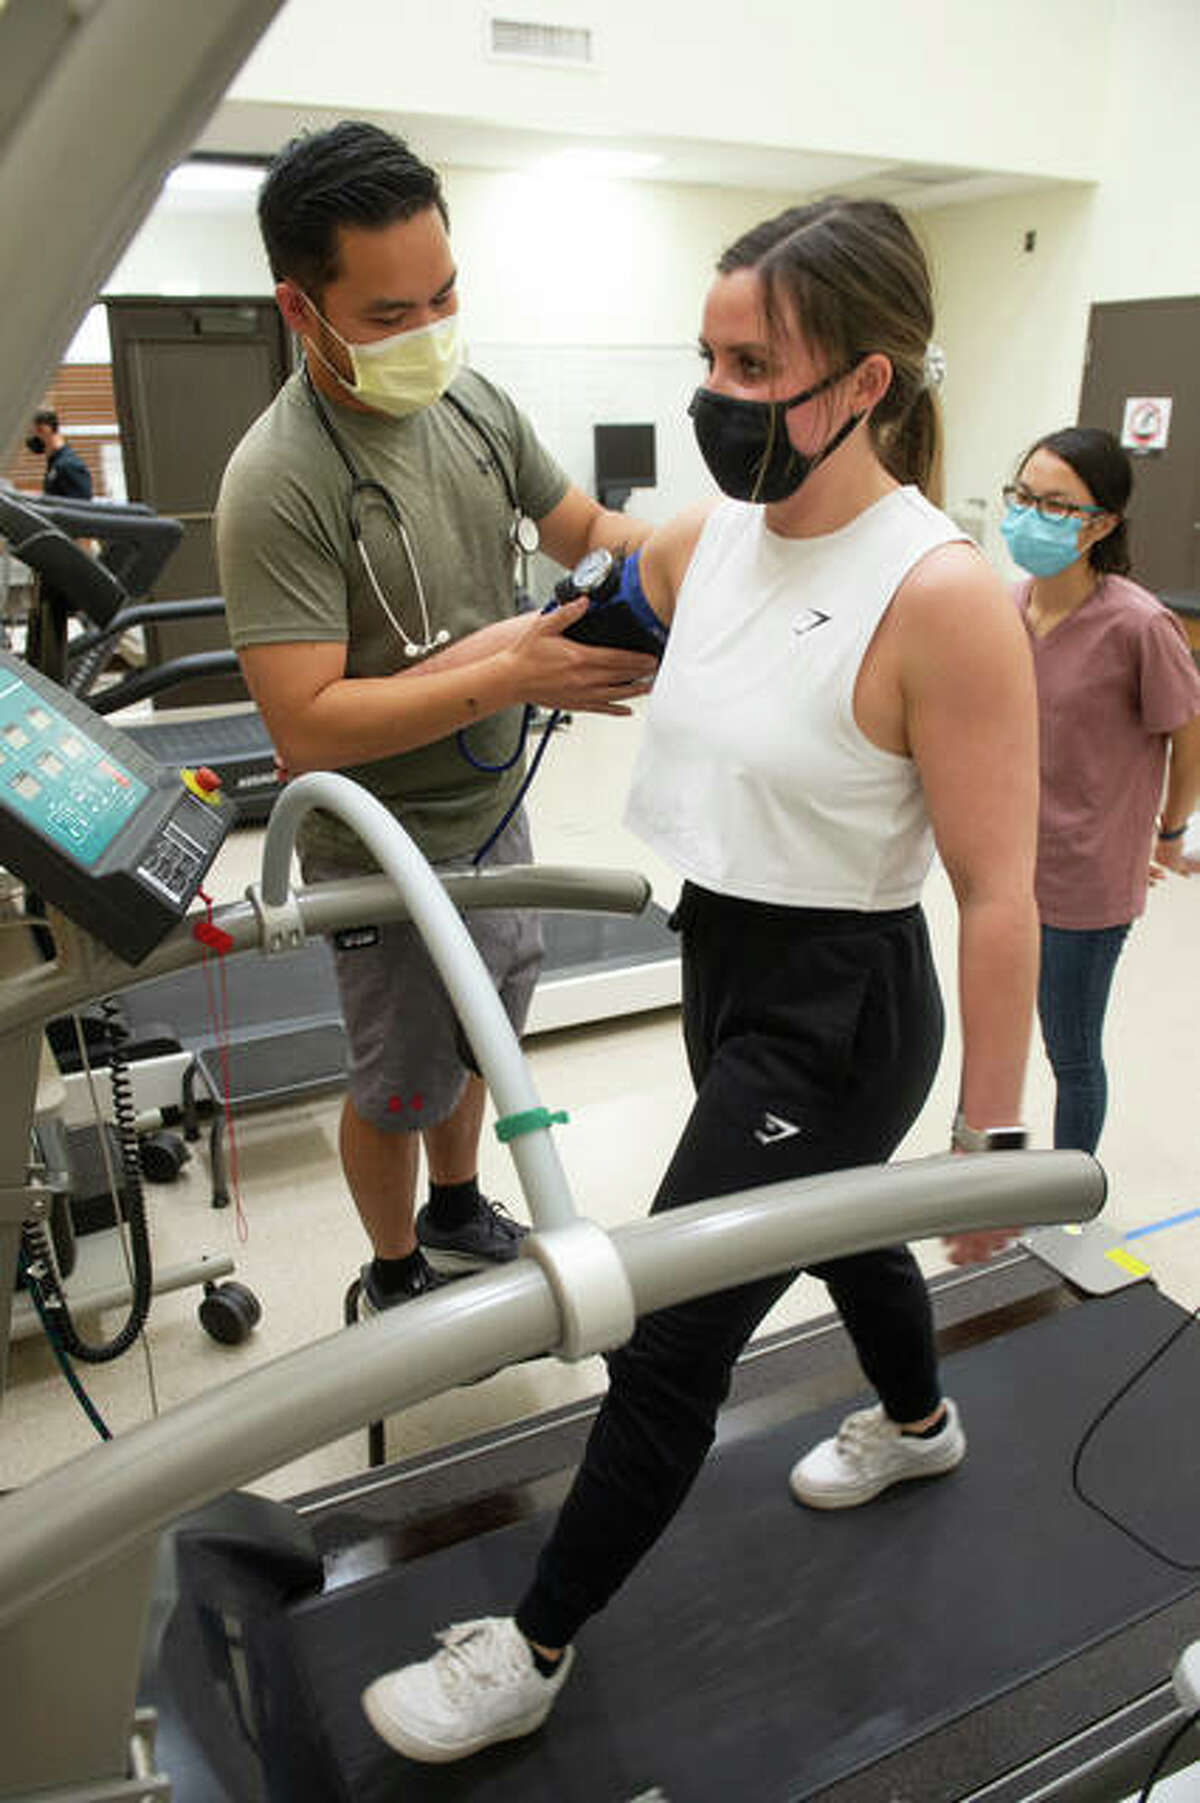 Graduate students Michael Ferreras, left, Jordan Killen, right, and Magali Coreggia. back, conduct heart rate and blood pressure while administering a graded exercise test at Southern Illinois University Edwardsville.